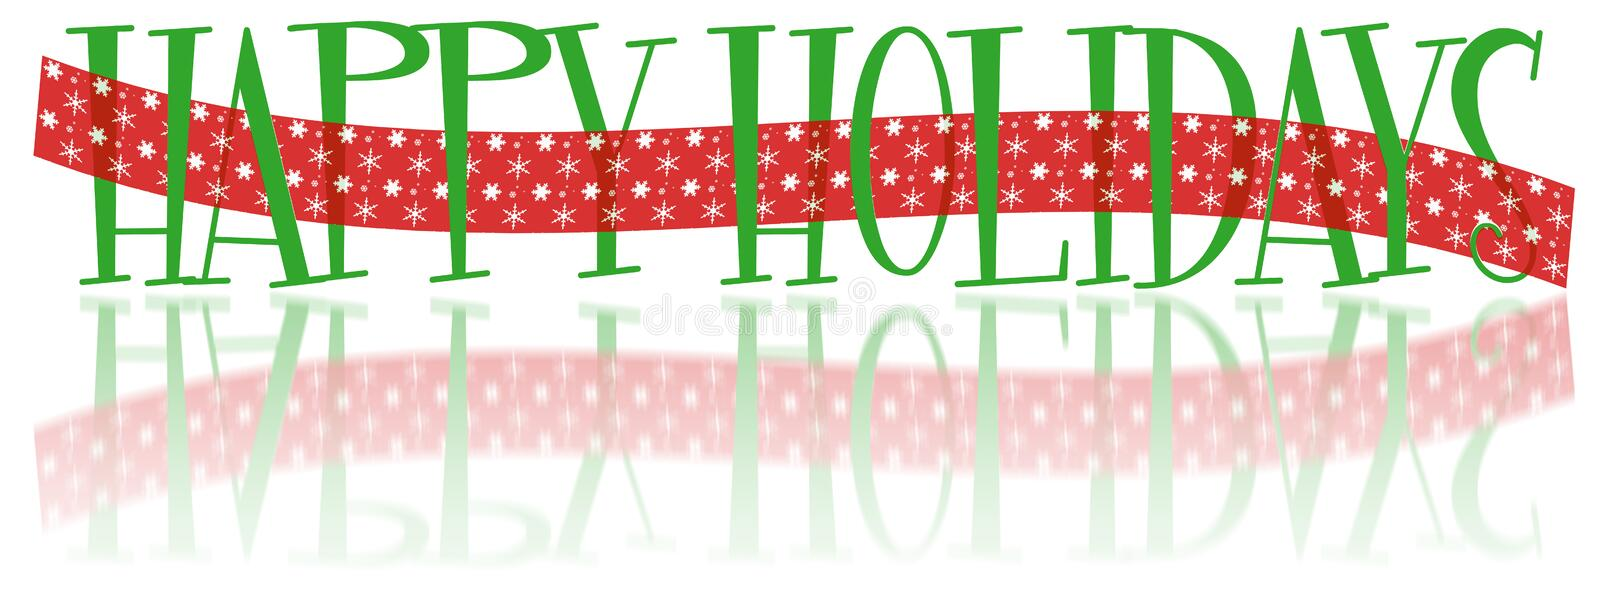 happy holidays banner stock illustration illustration of banner rh dreamstime com Winter Holiday Clip Art Banners Holiday Lights Banner Clip Art